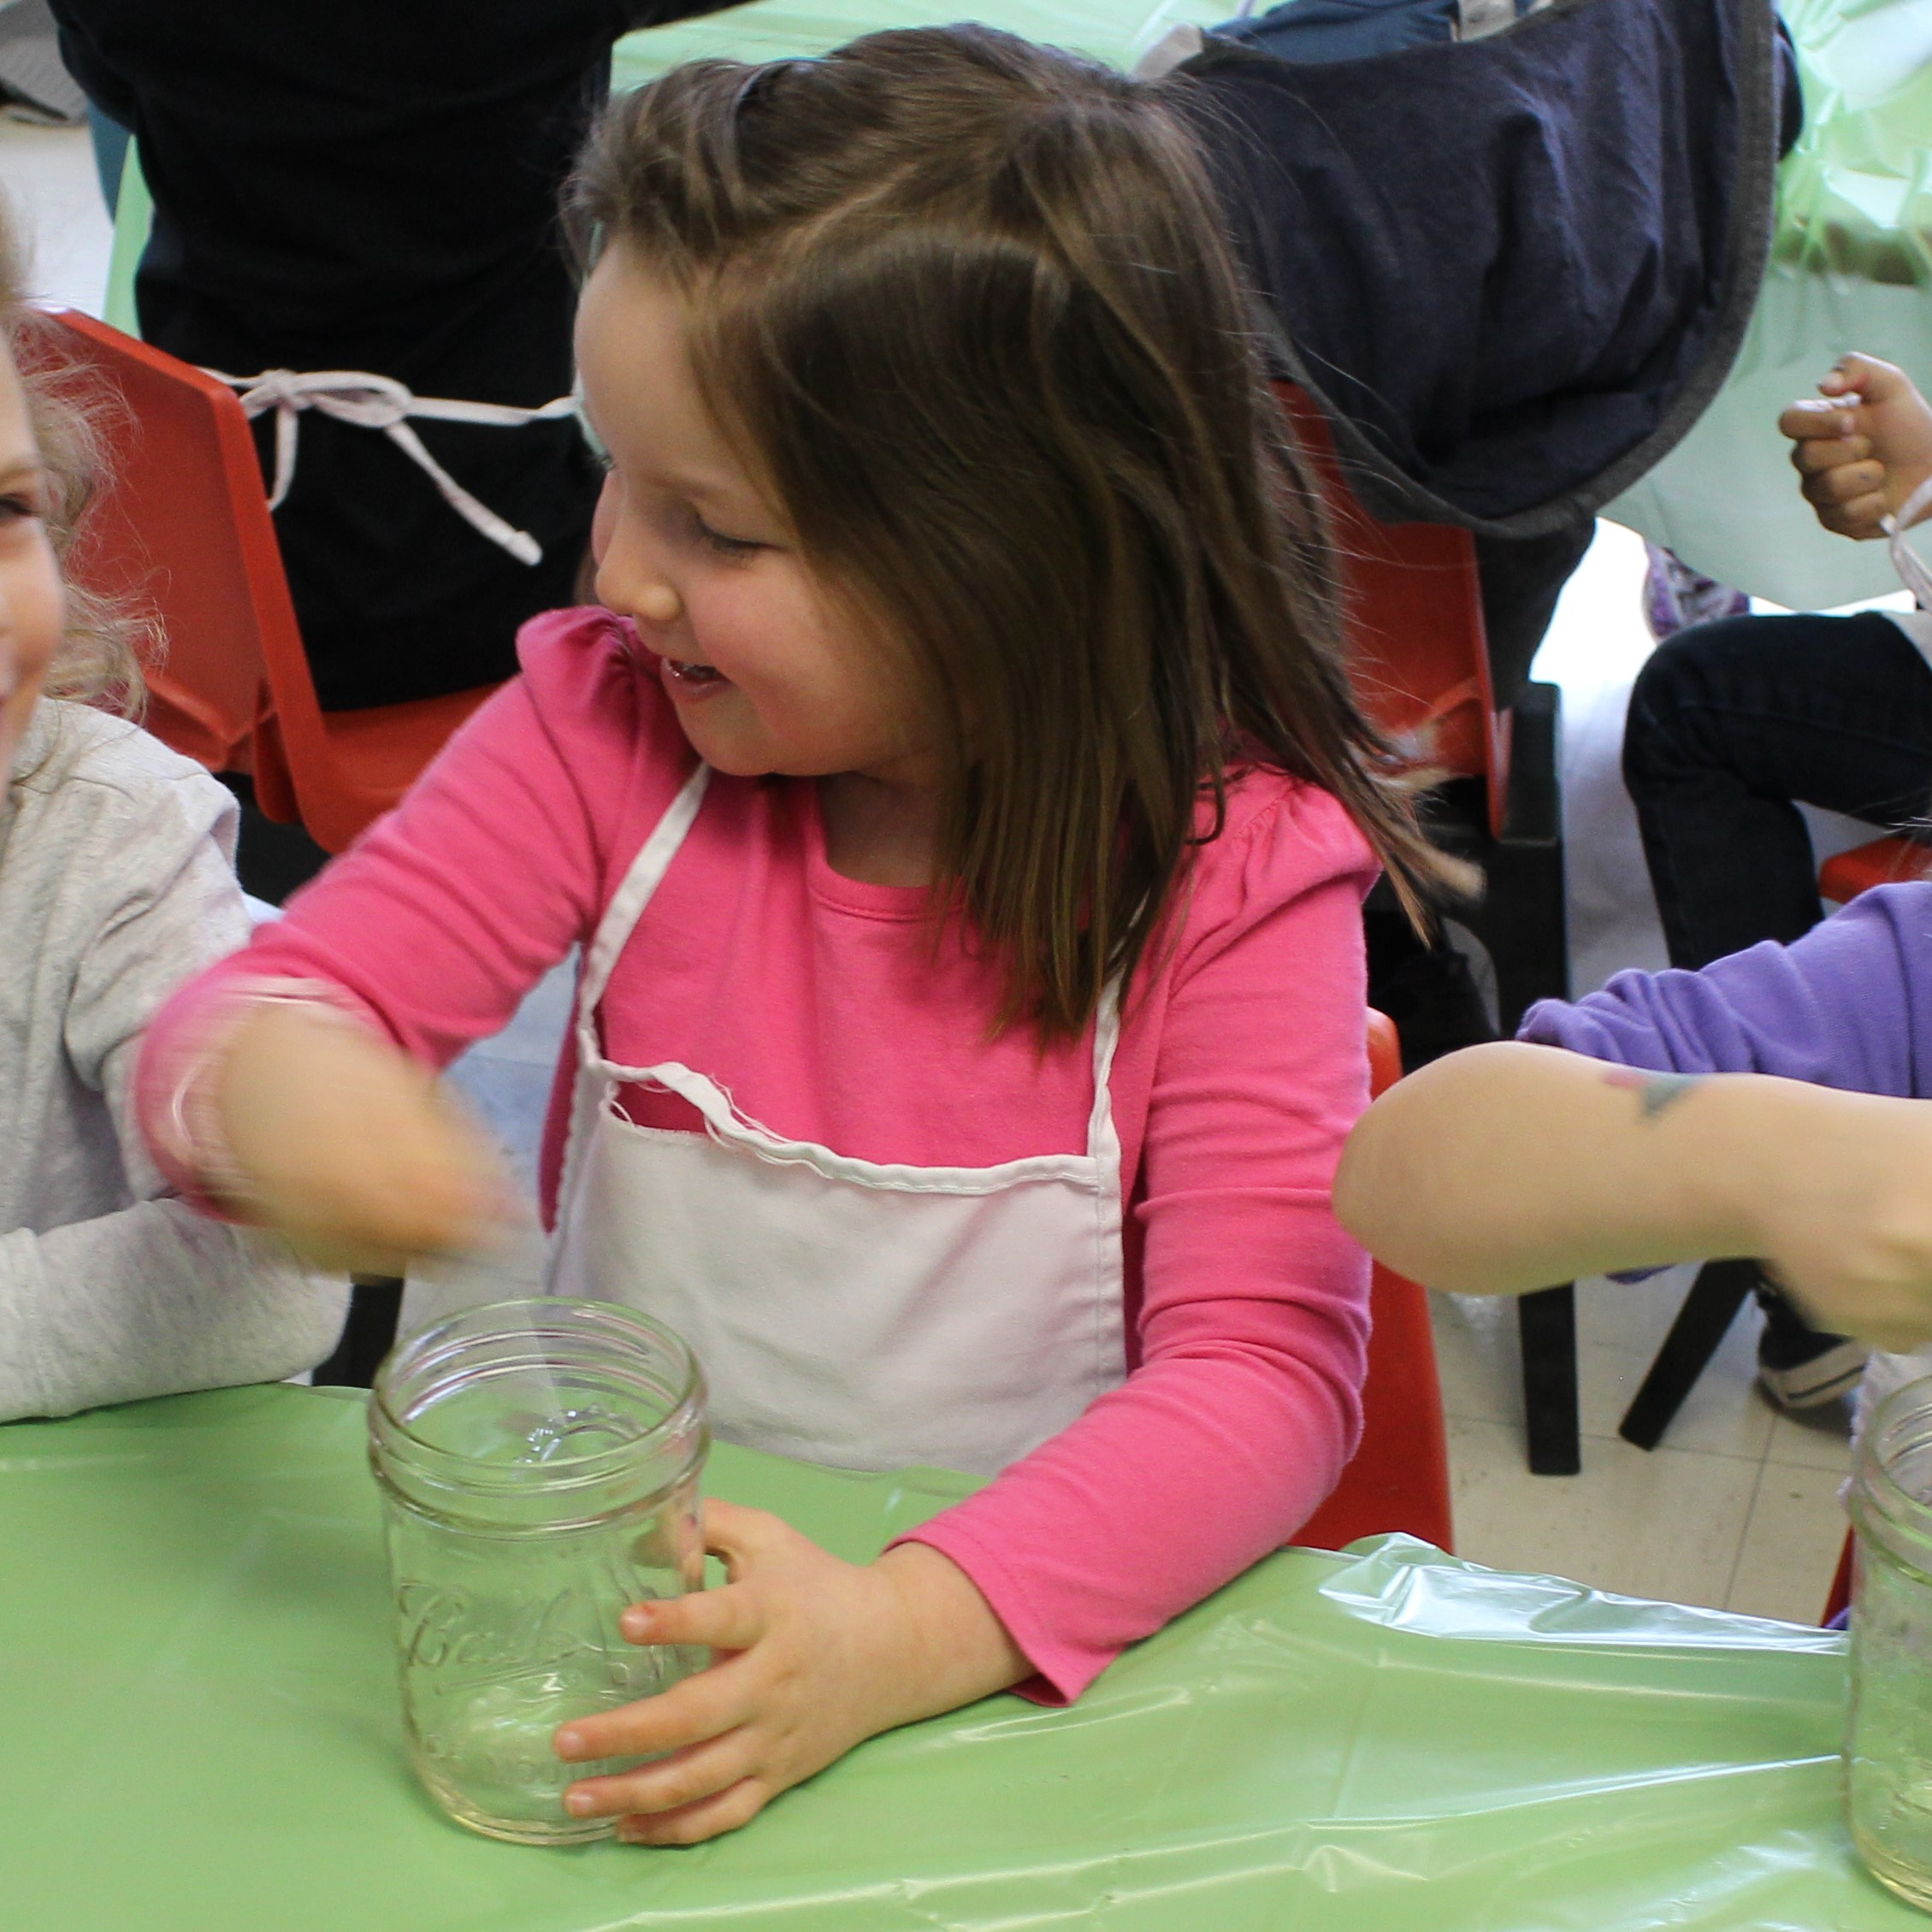 The kids enjoyed using their wire whisks and Ball jars to make music, prior to using them to mix bread pudding ingredients.